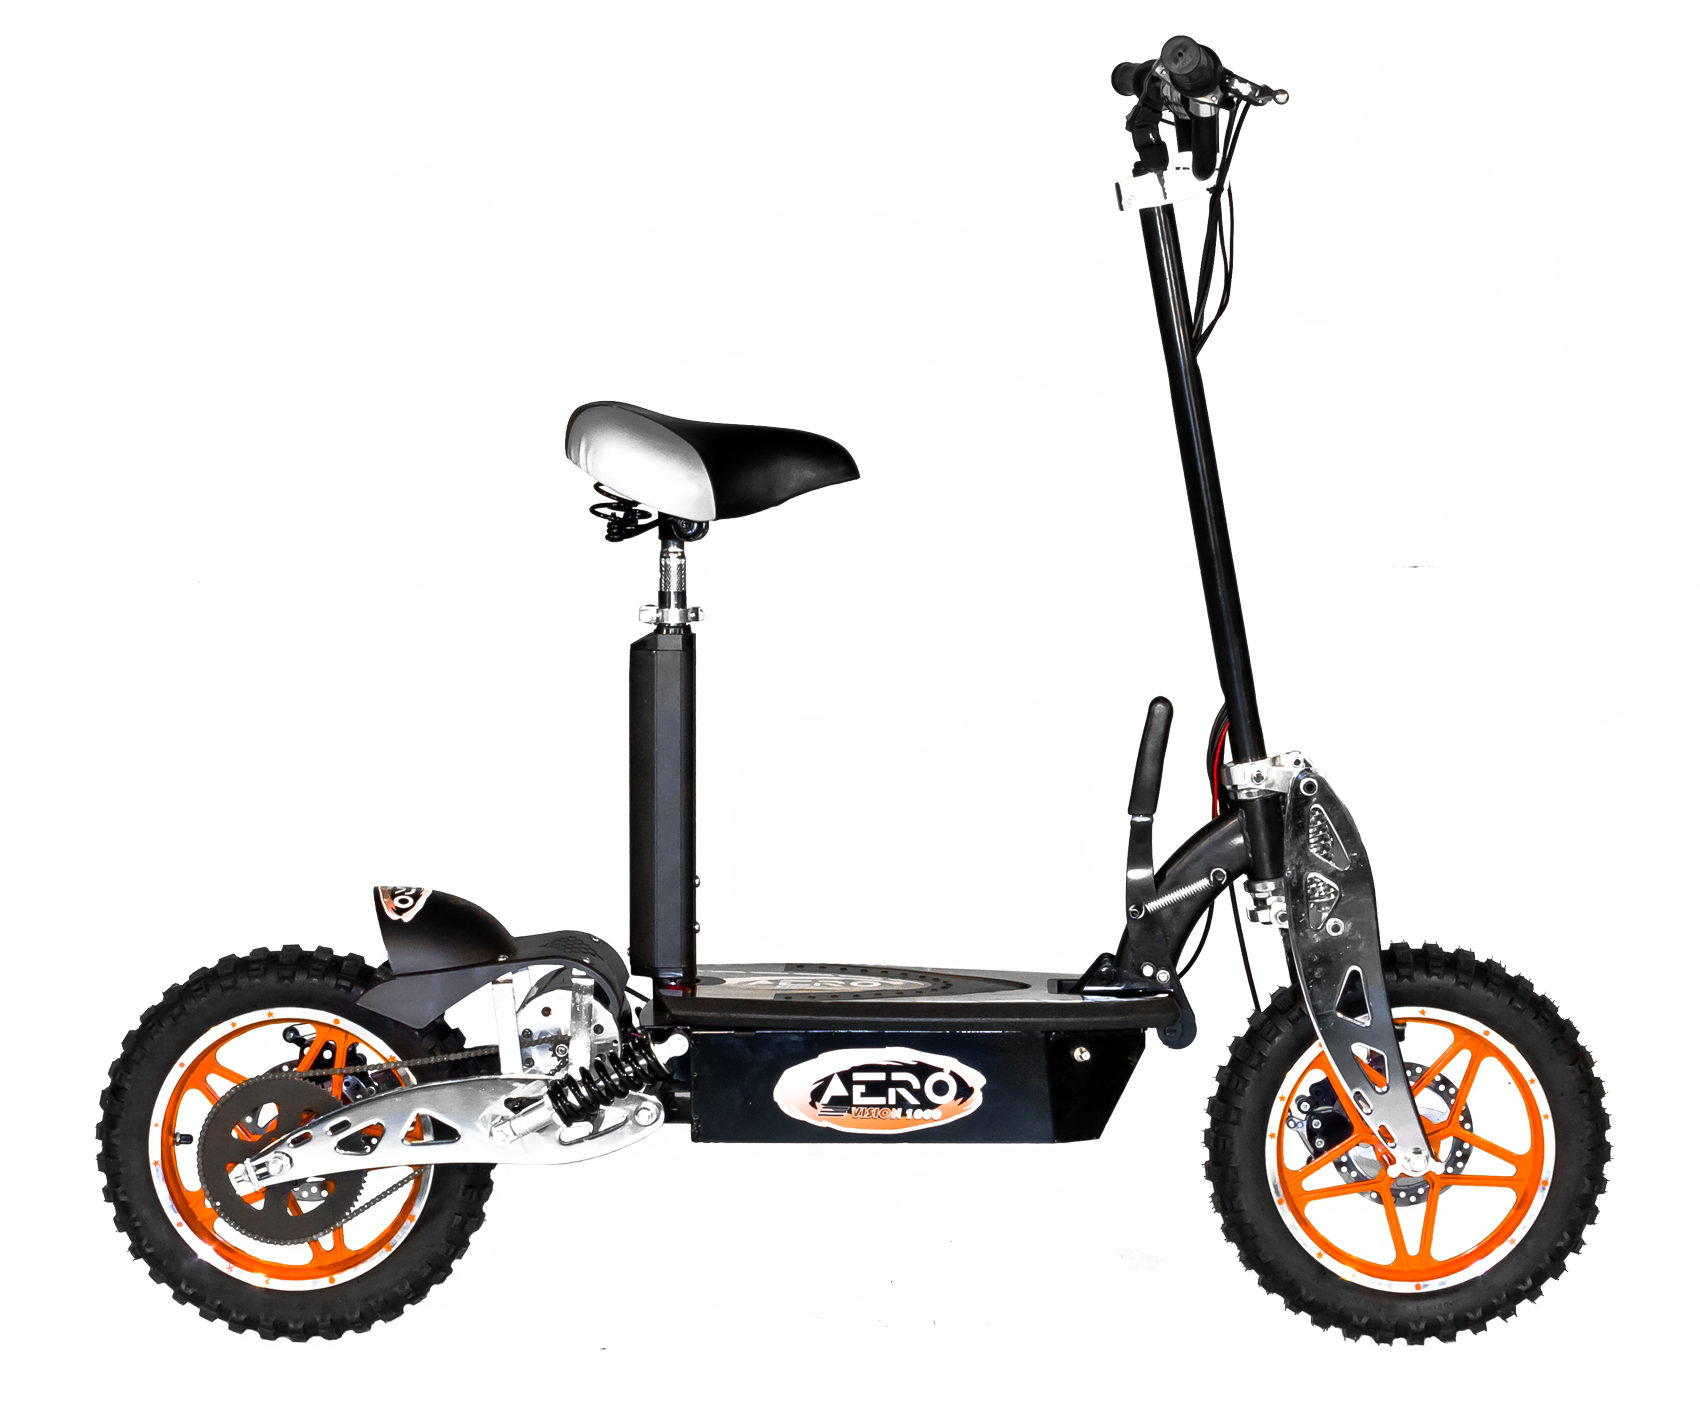 samsung galaxy norge el scooter 1000w. Black Bedroom Furniture Sets. Home Design Ideas